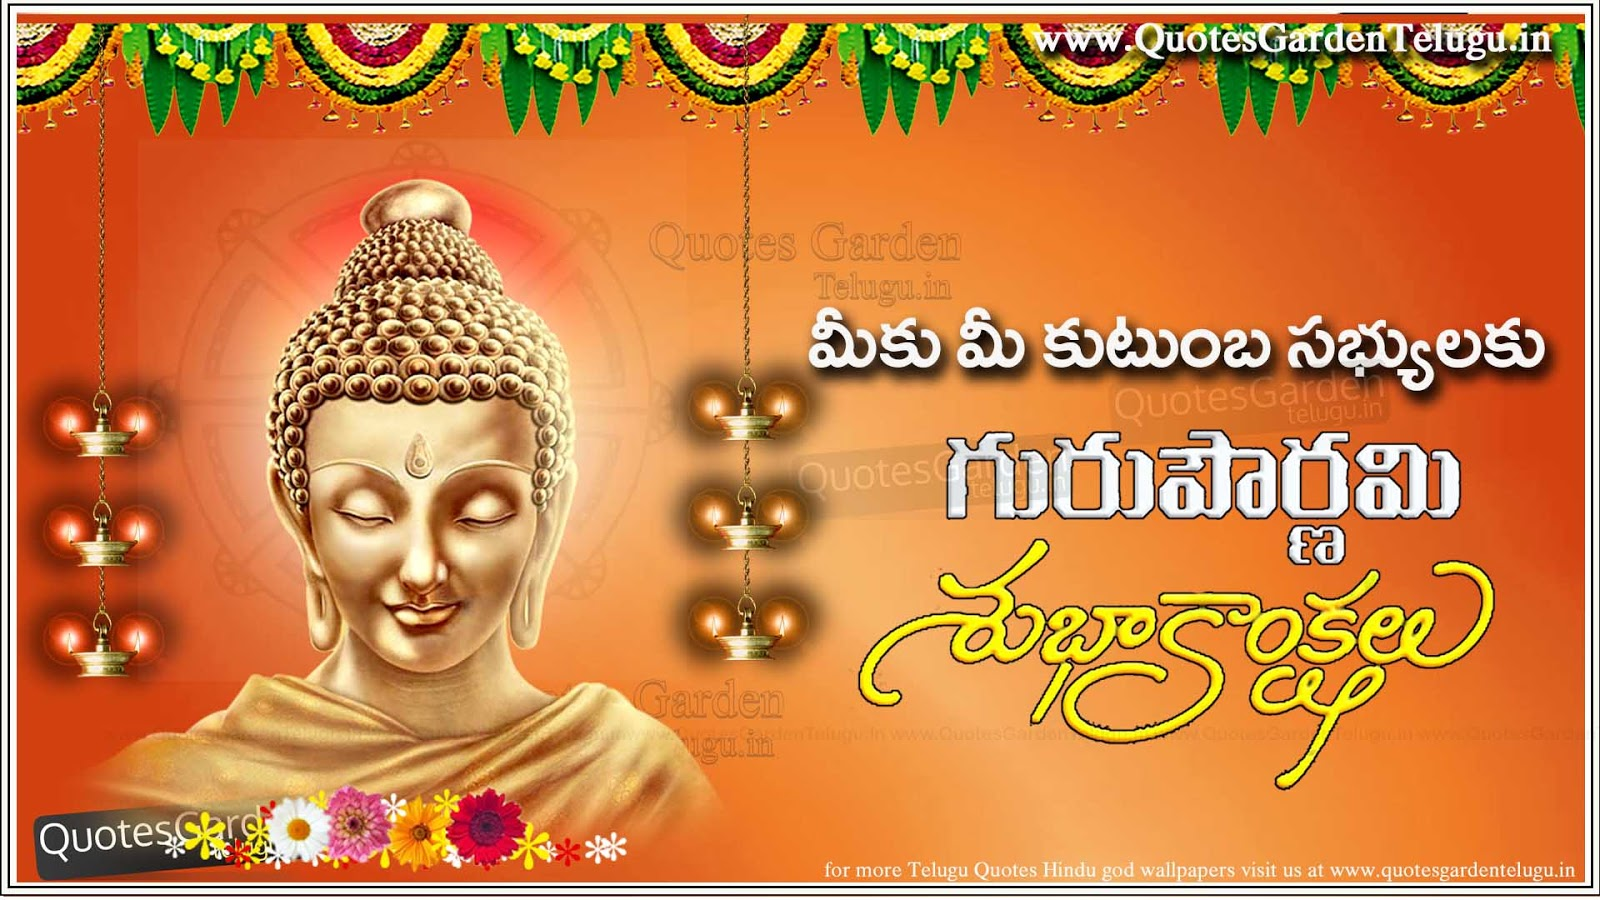 Nice Wallpapers With Quotes About Life In Hindi Telugu Guru Pournami Greetings Quotations Wallpapers